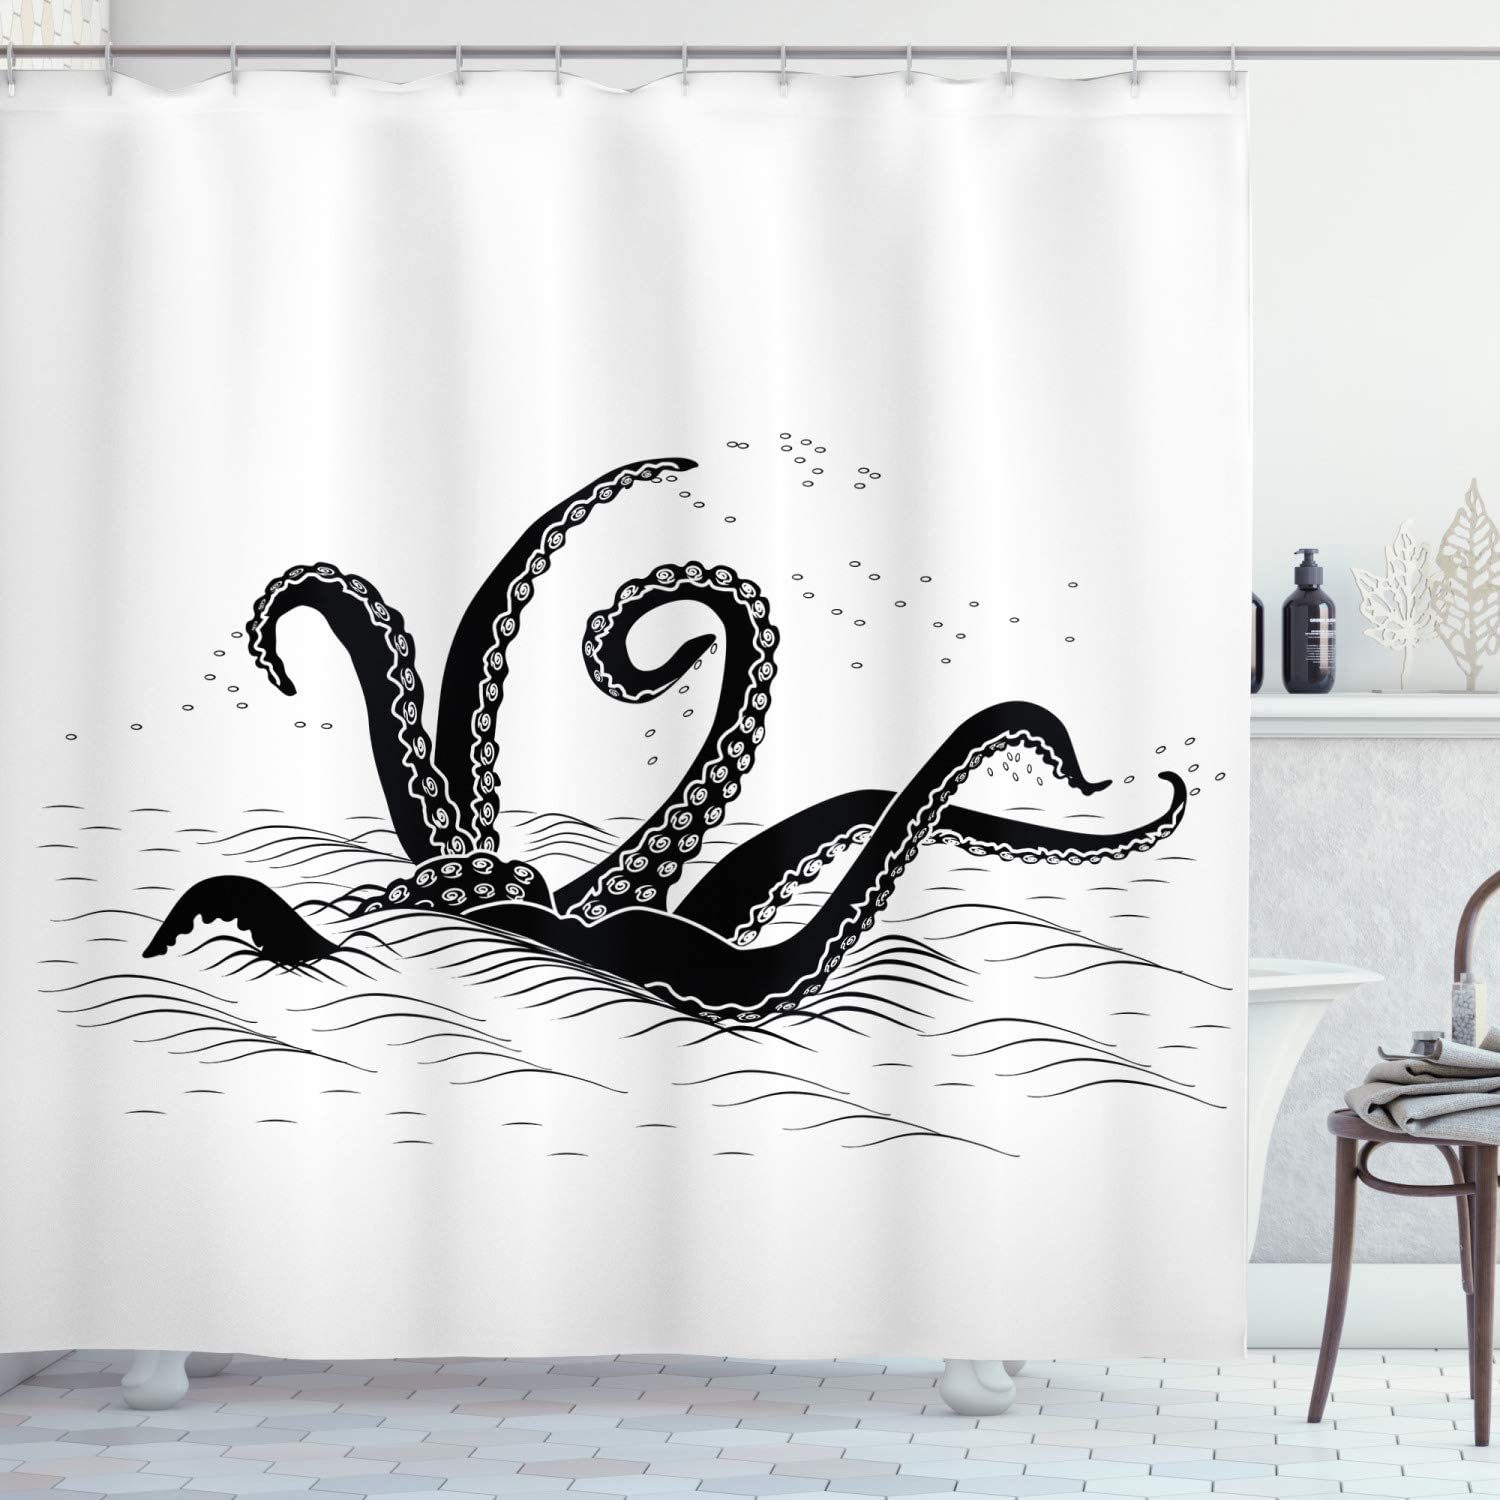 Ambesonne Octopus Shower Curtain, Mythological Kraken Octopus Tentacles Monster in The Sea Illustration Nautical, Cloth Fabric Bathroom Decor Set with Hooks, 75